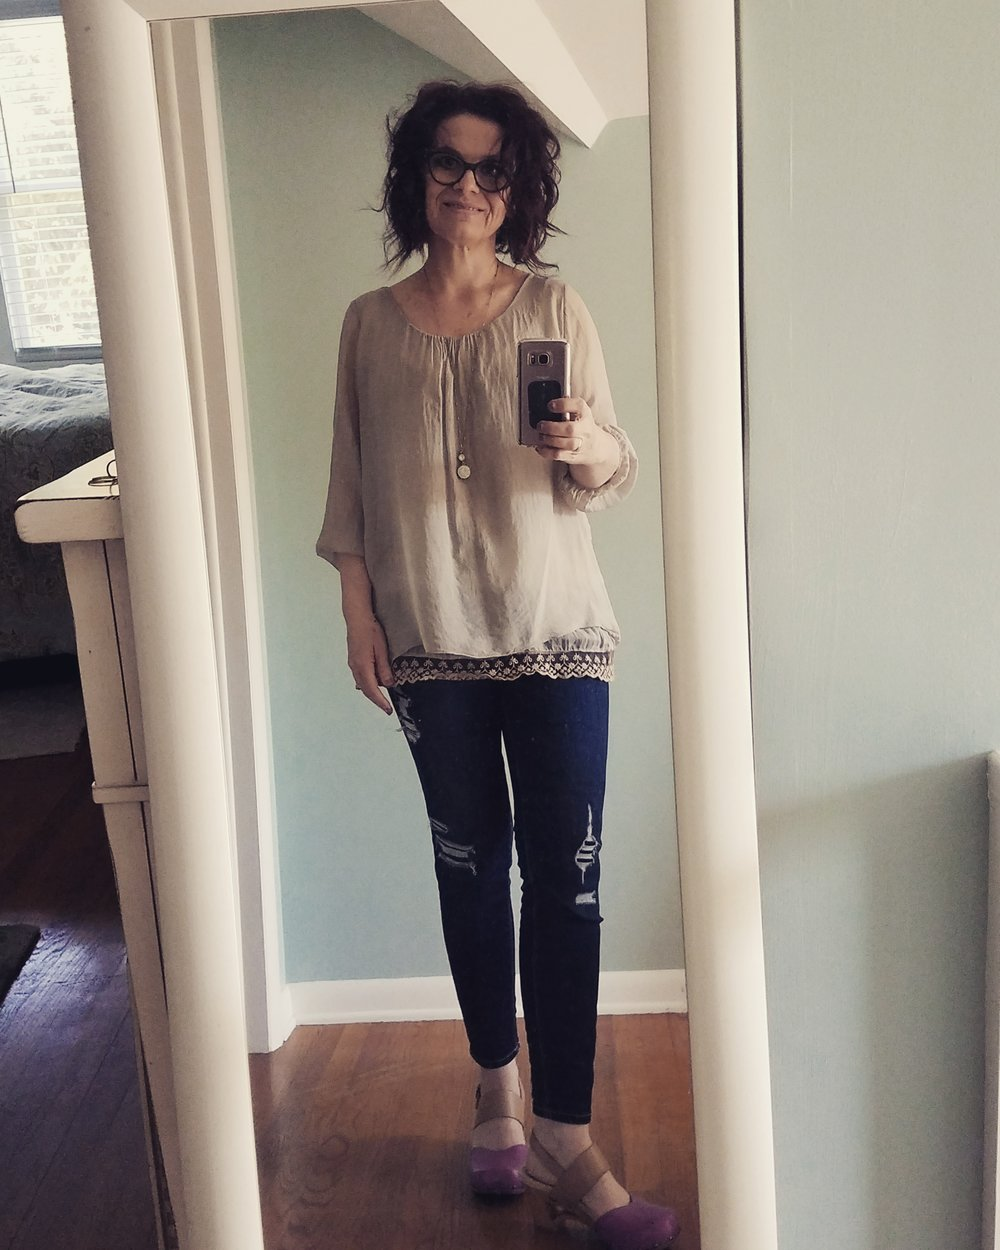 Closet try-out with a top